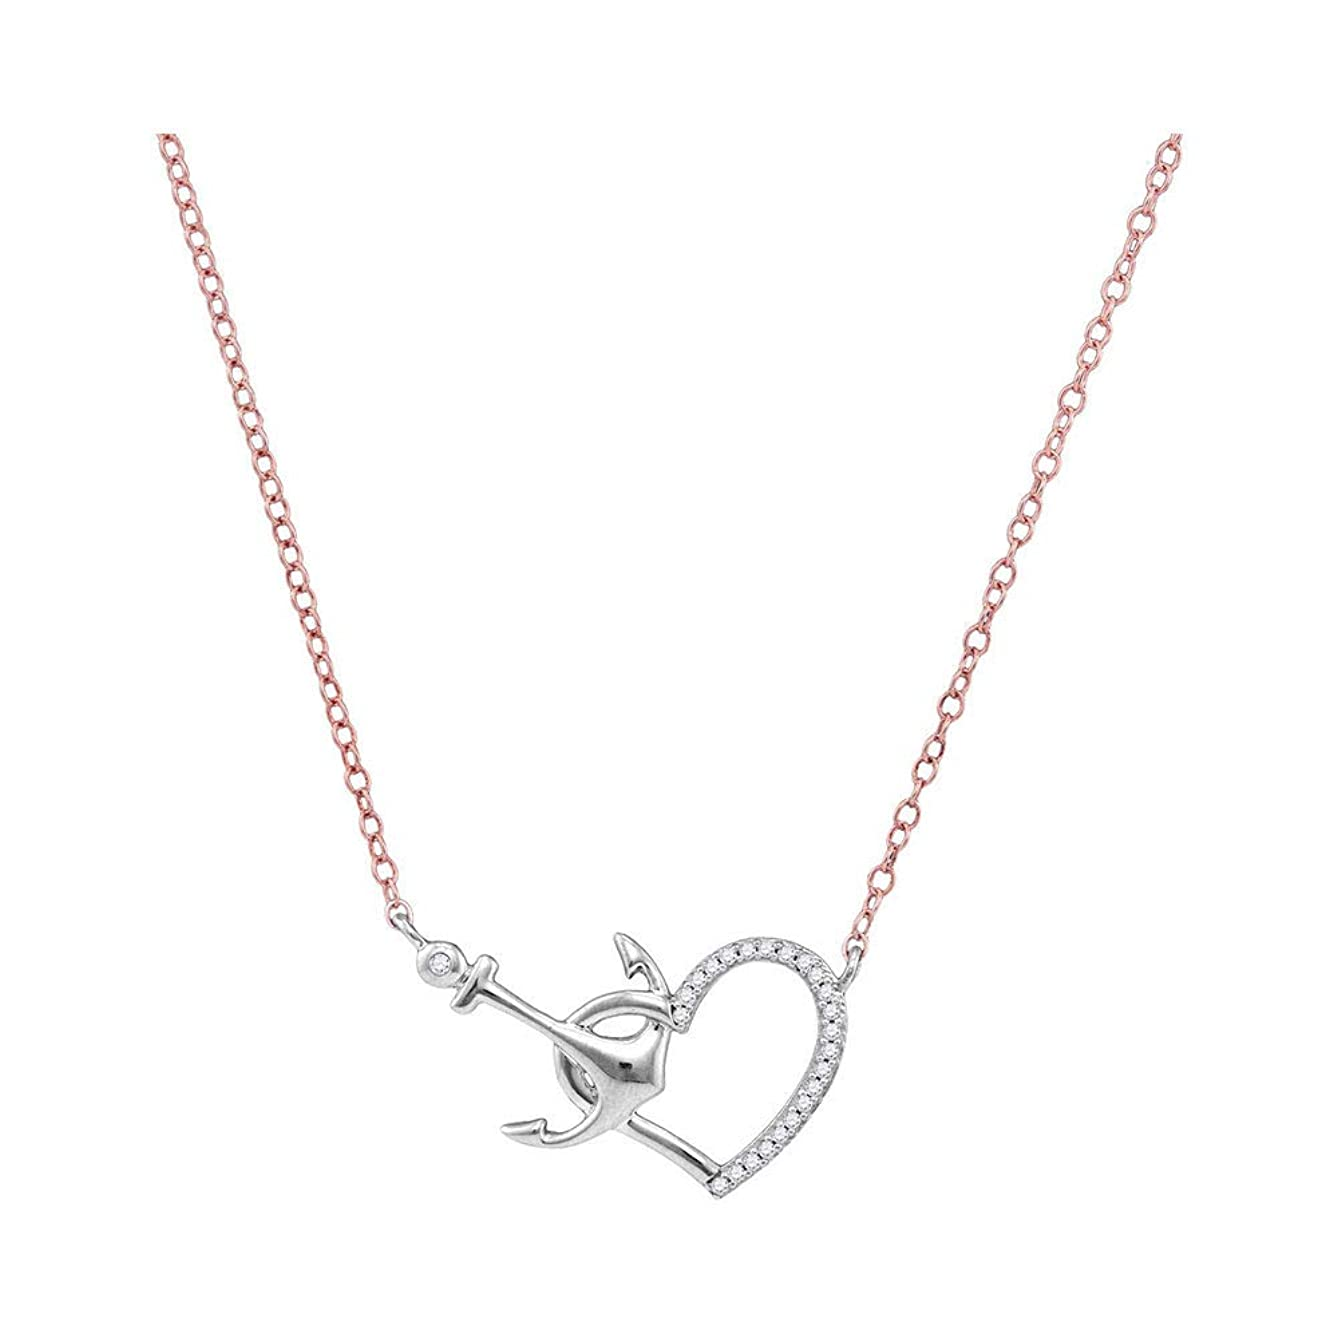 The Diamond Deal 10kt White Gold Womens Round Diamond Heart & Anchor Pendant Necklace 1/12 Cttw